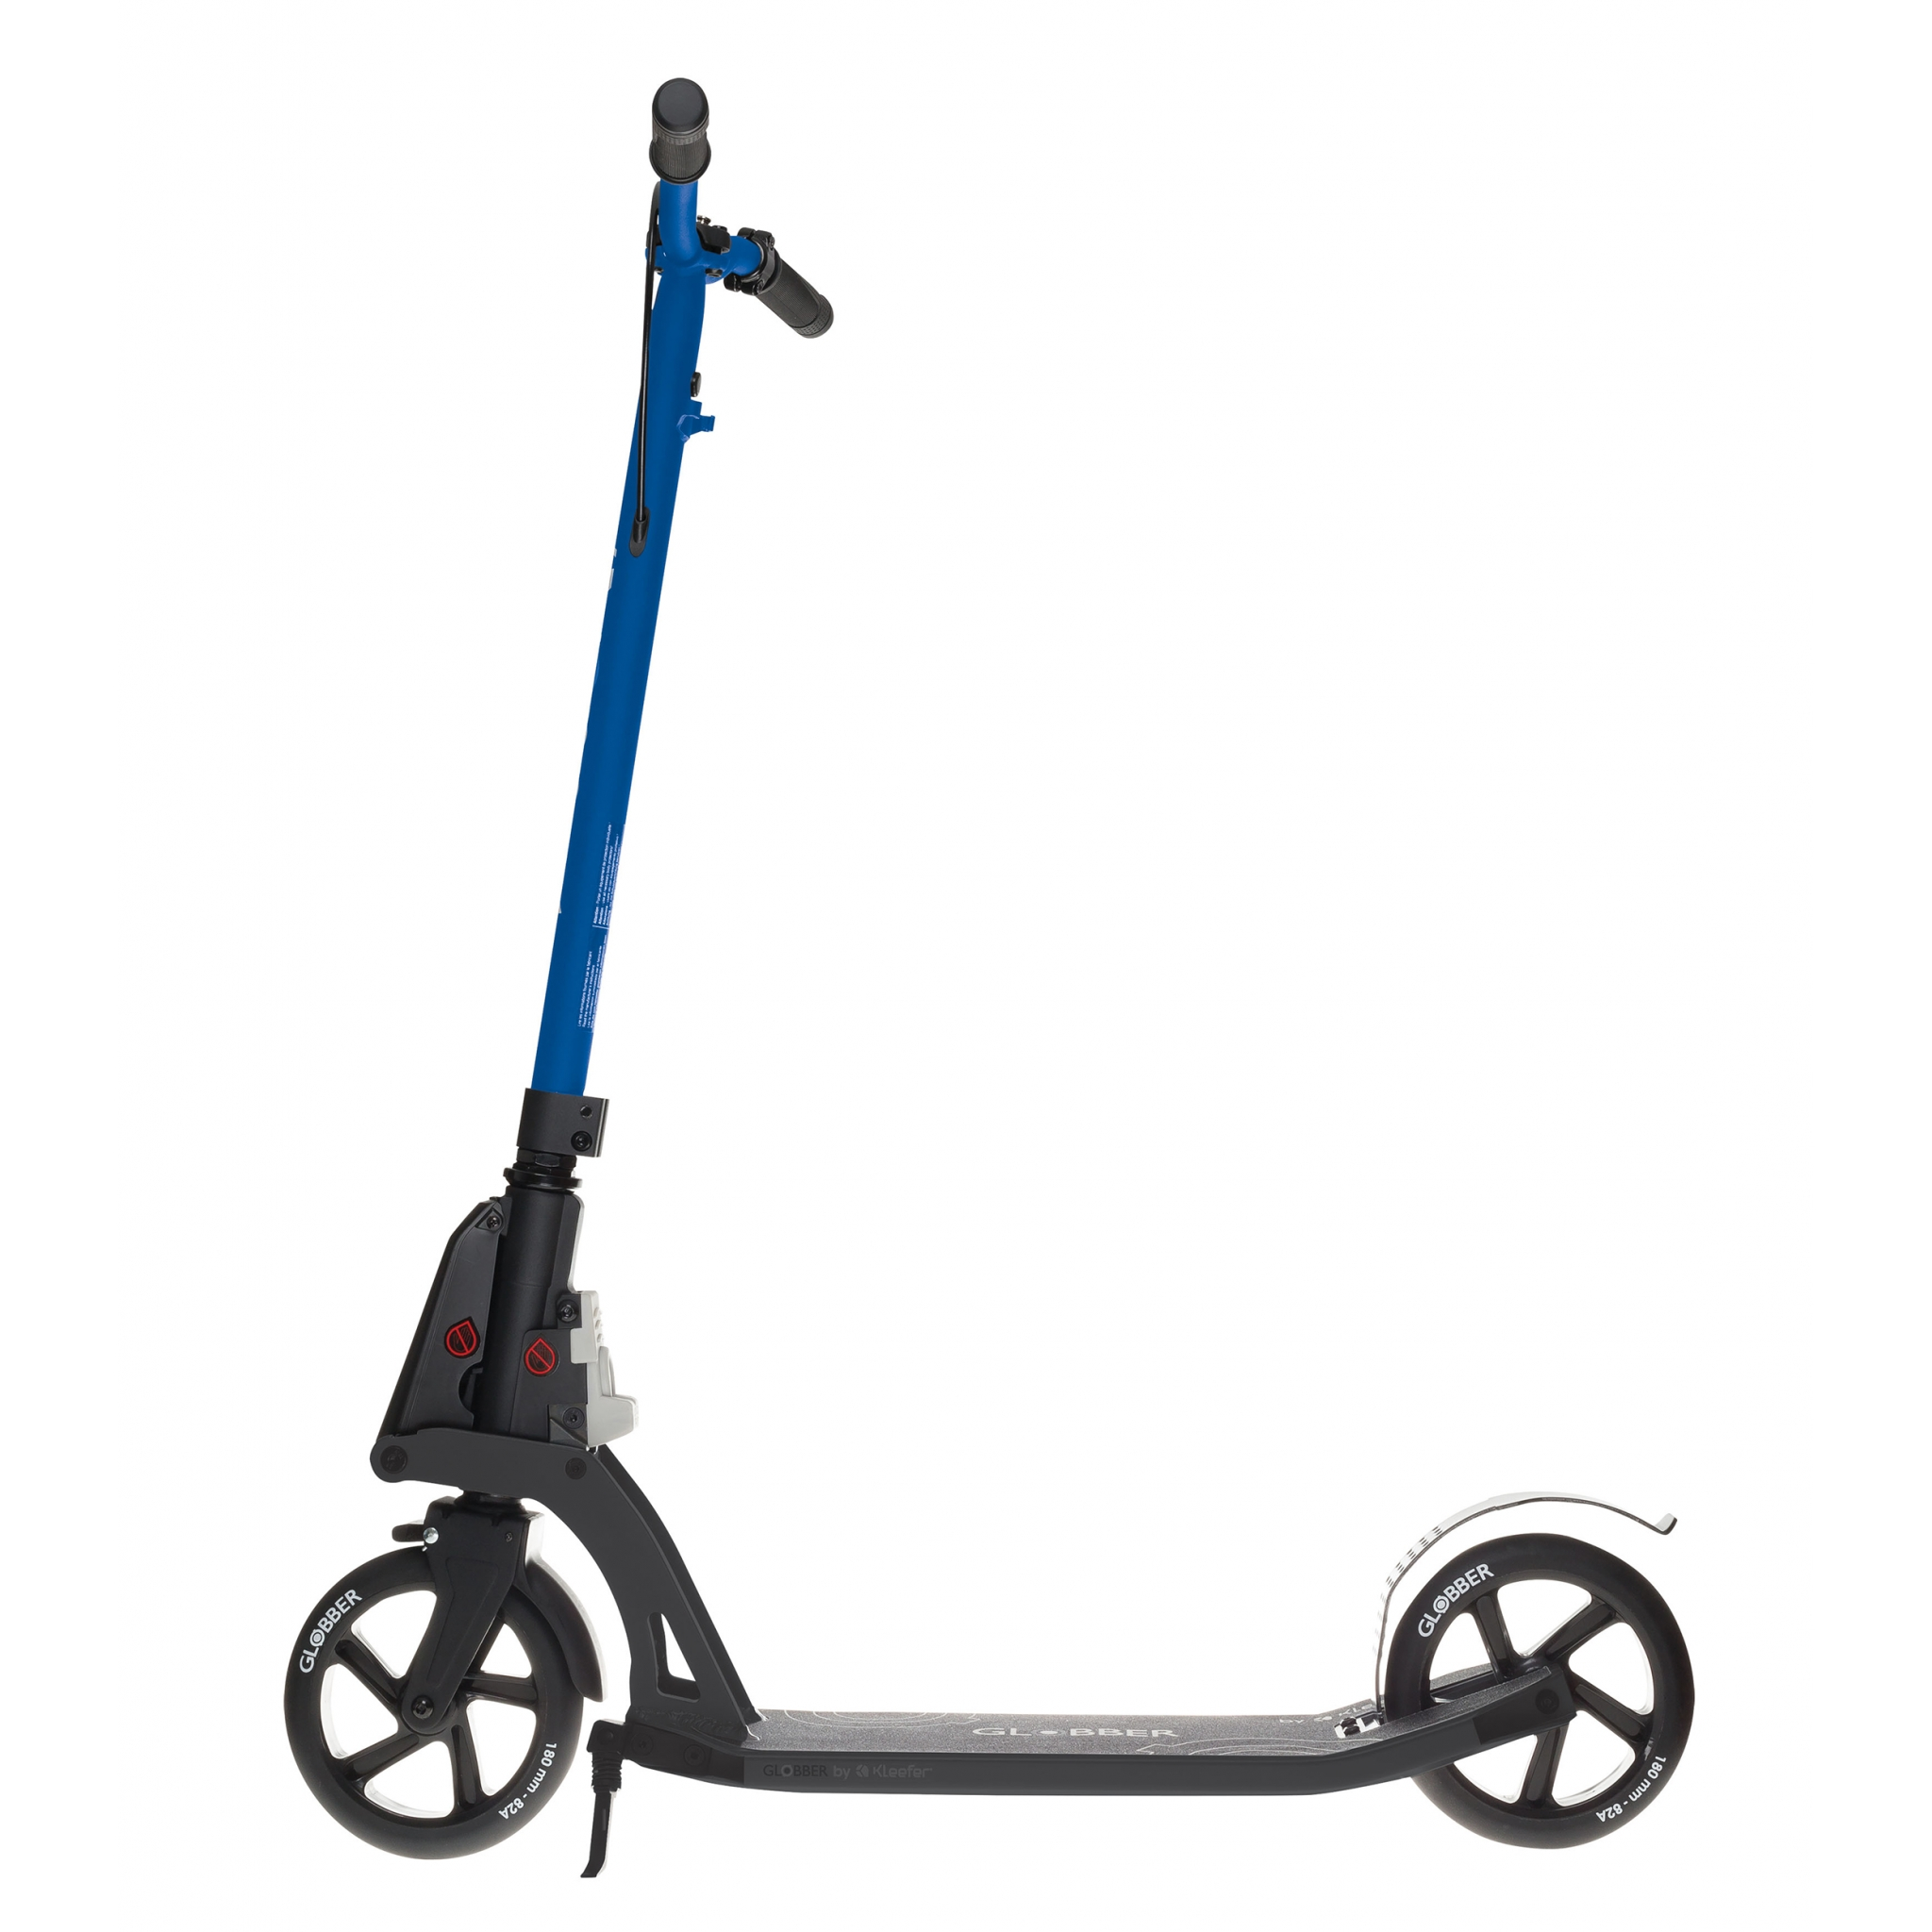 foldable scooter for adults with handbrake - Globber ONE K 180 BR 2